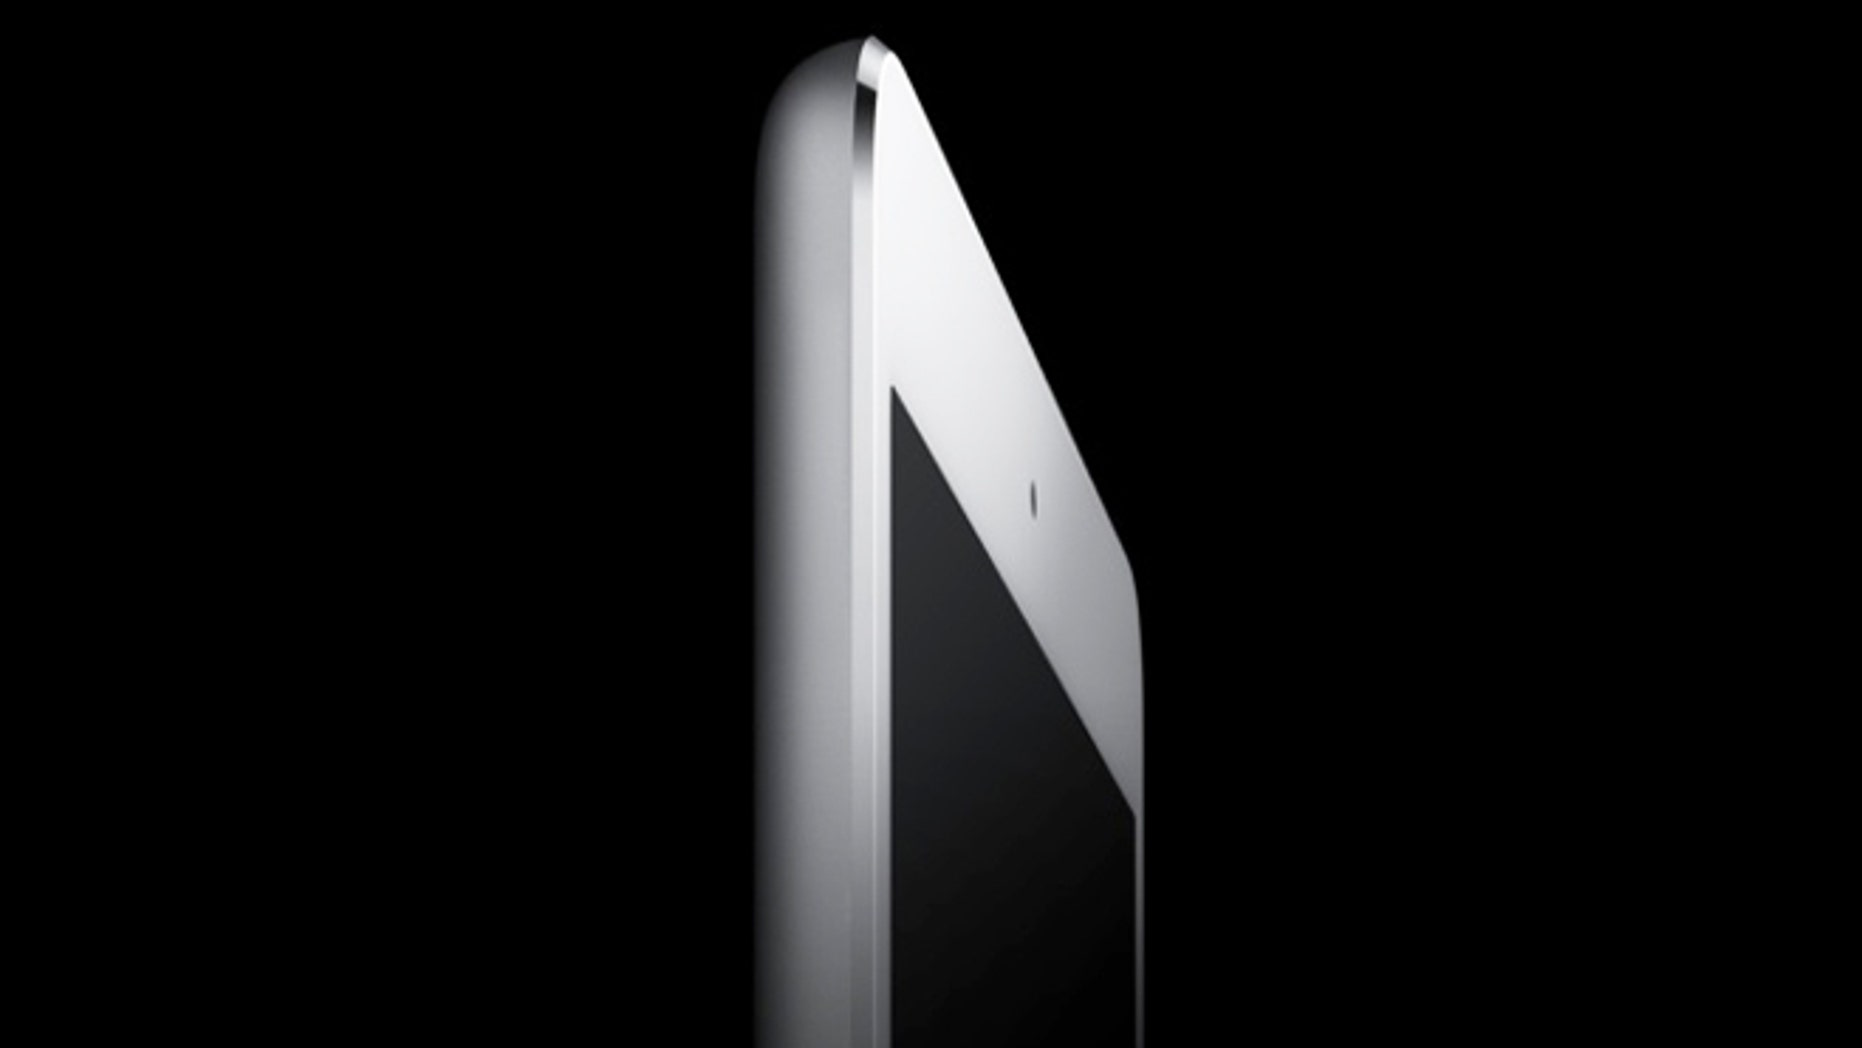 Is a new iPad on the horizon?